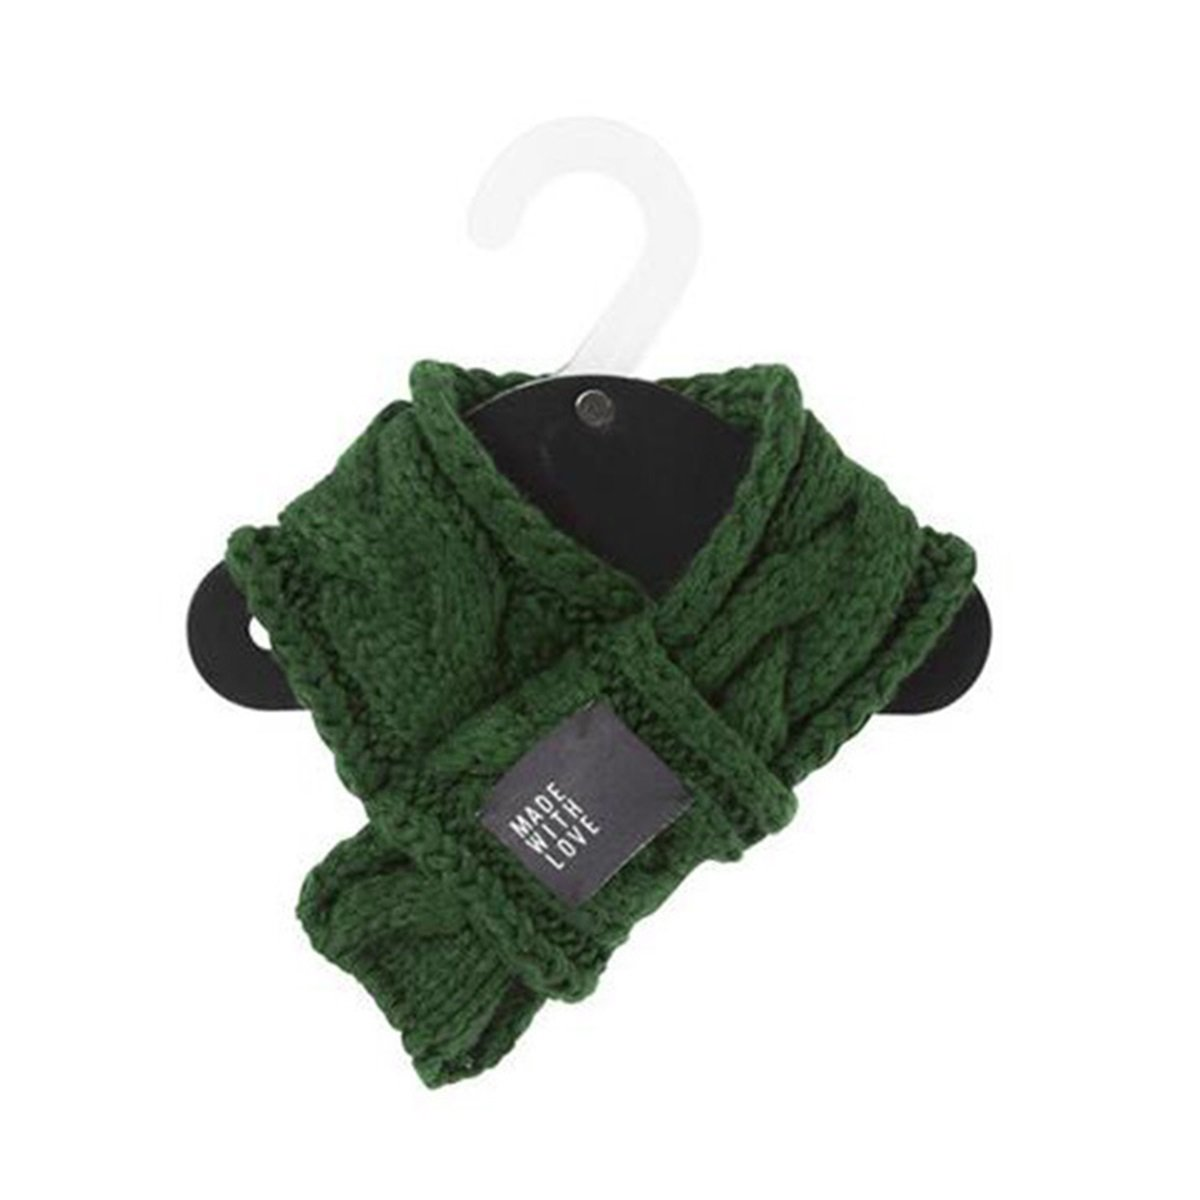 Green M Green M PetBoBo Pet Dog Cat Costume Apparel Winter Scarf for Dogs (M, Green)